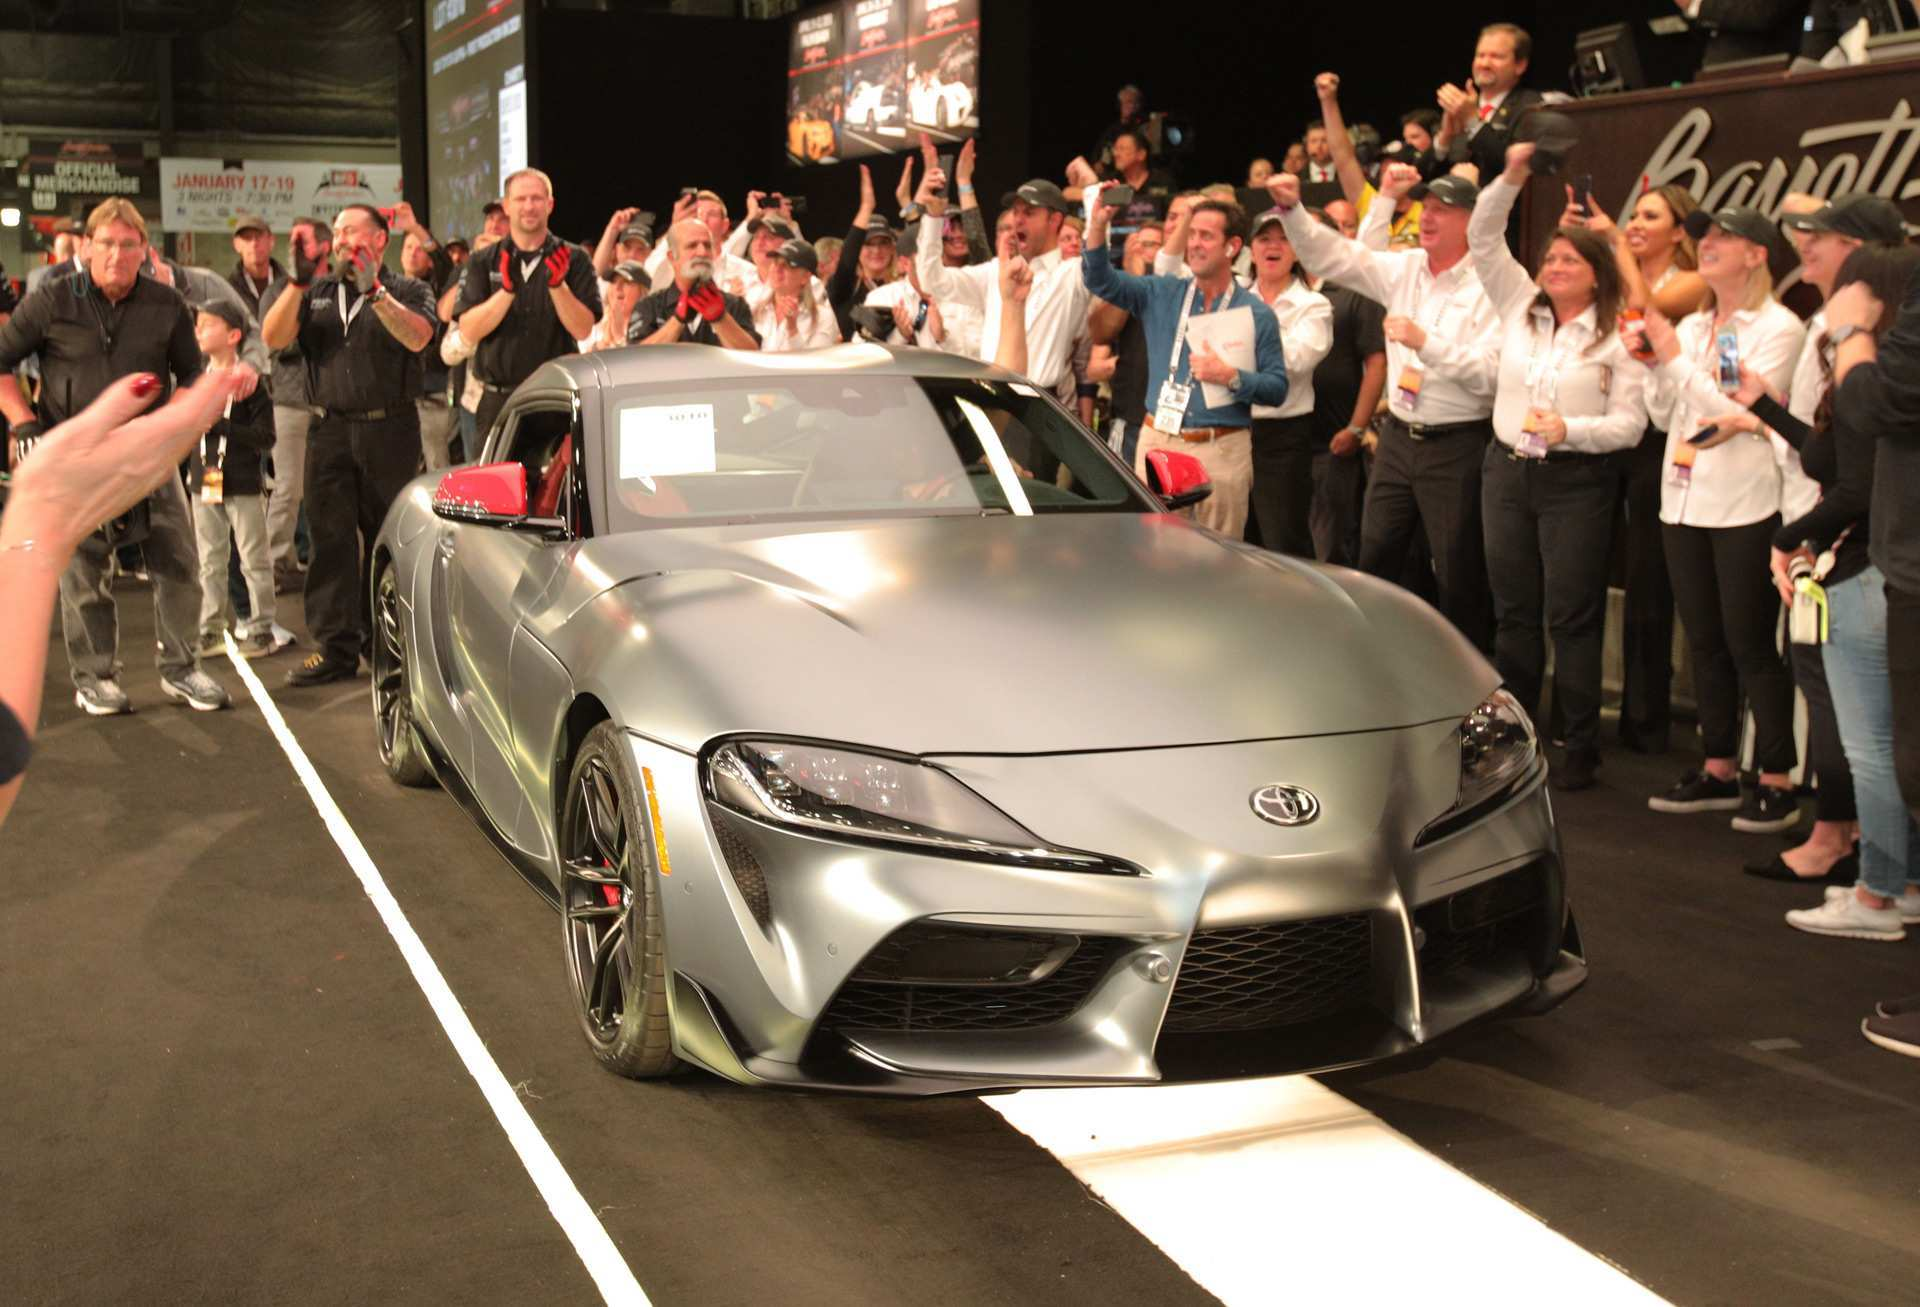 68 Concept of Who Bought The 2020 Toyota Supra At Barrett Jackson Speed Test for Who Bought The 2020 Toyota Supra At Barrett Jackson